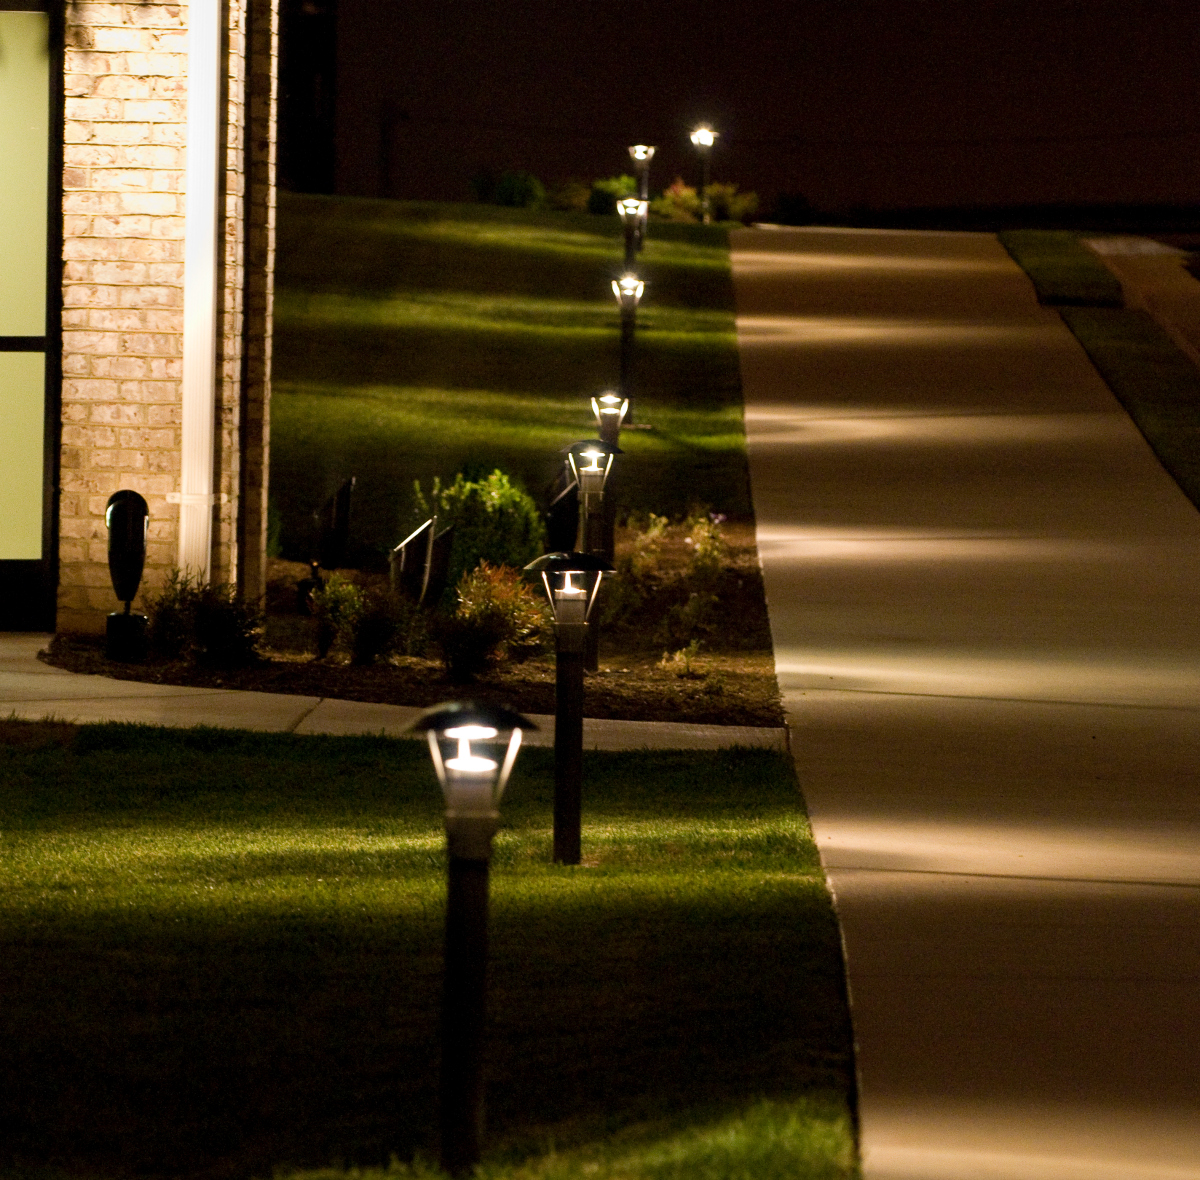 Outdoor lighting perspectives of st louis mo - How to design outdoor lighting plan ...